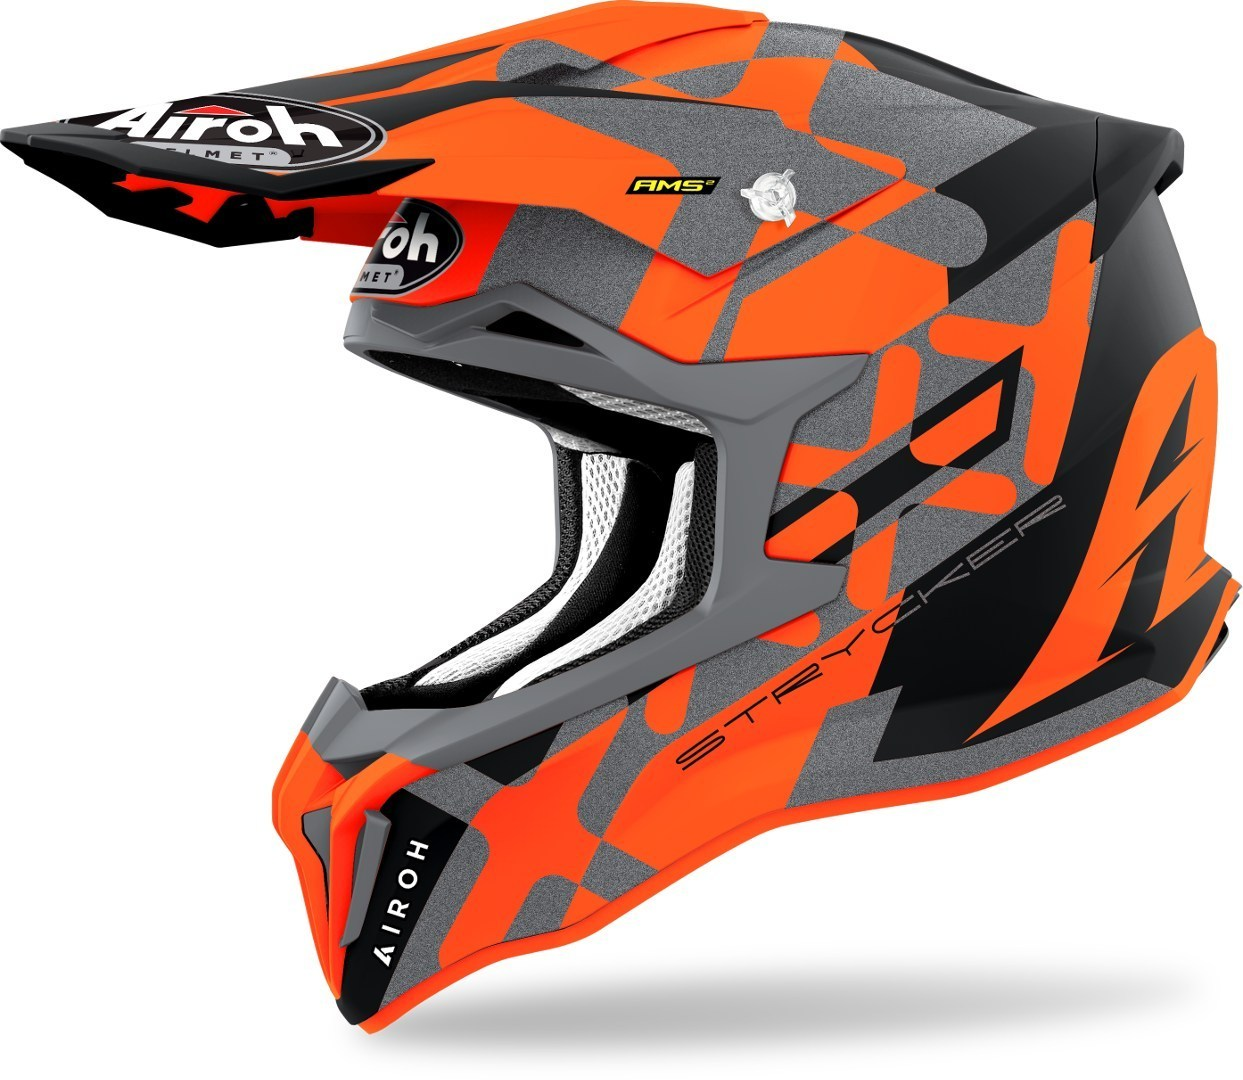 Airoh Strycker XXX Carbon Motocross Helm, orange, Größe XL, orange, Größe XL